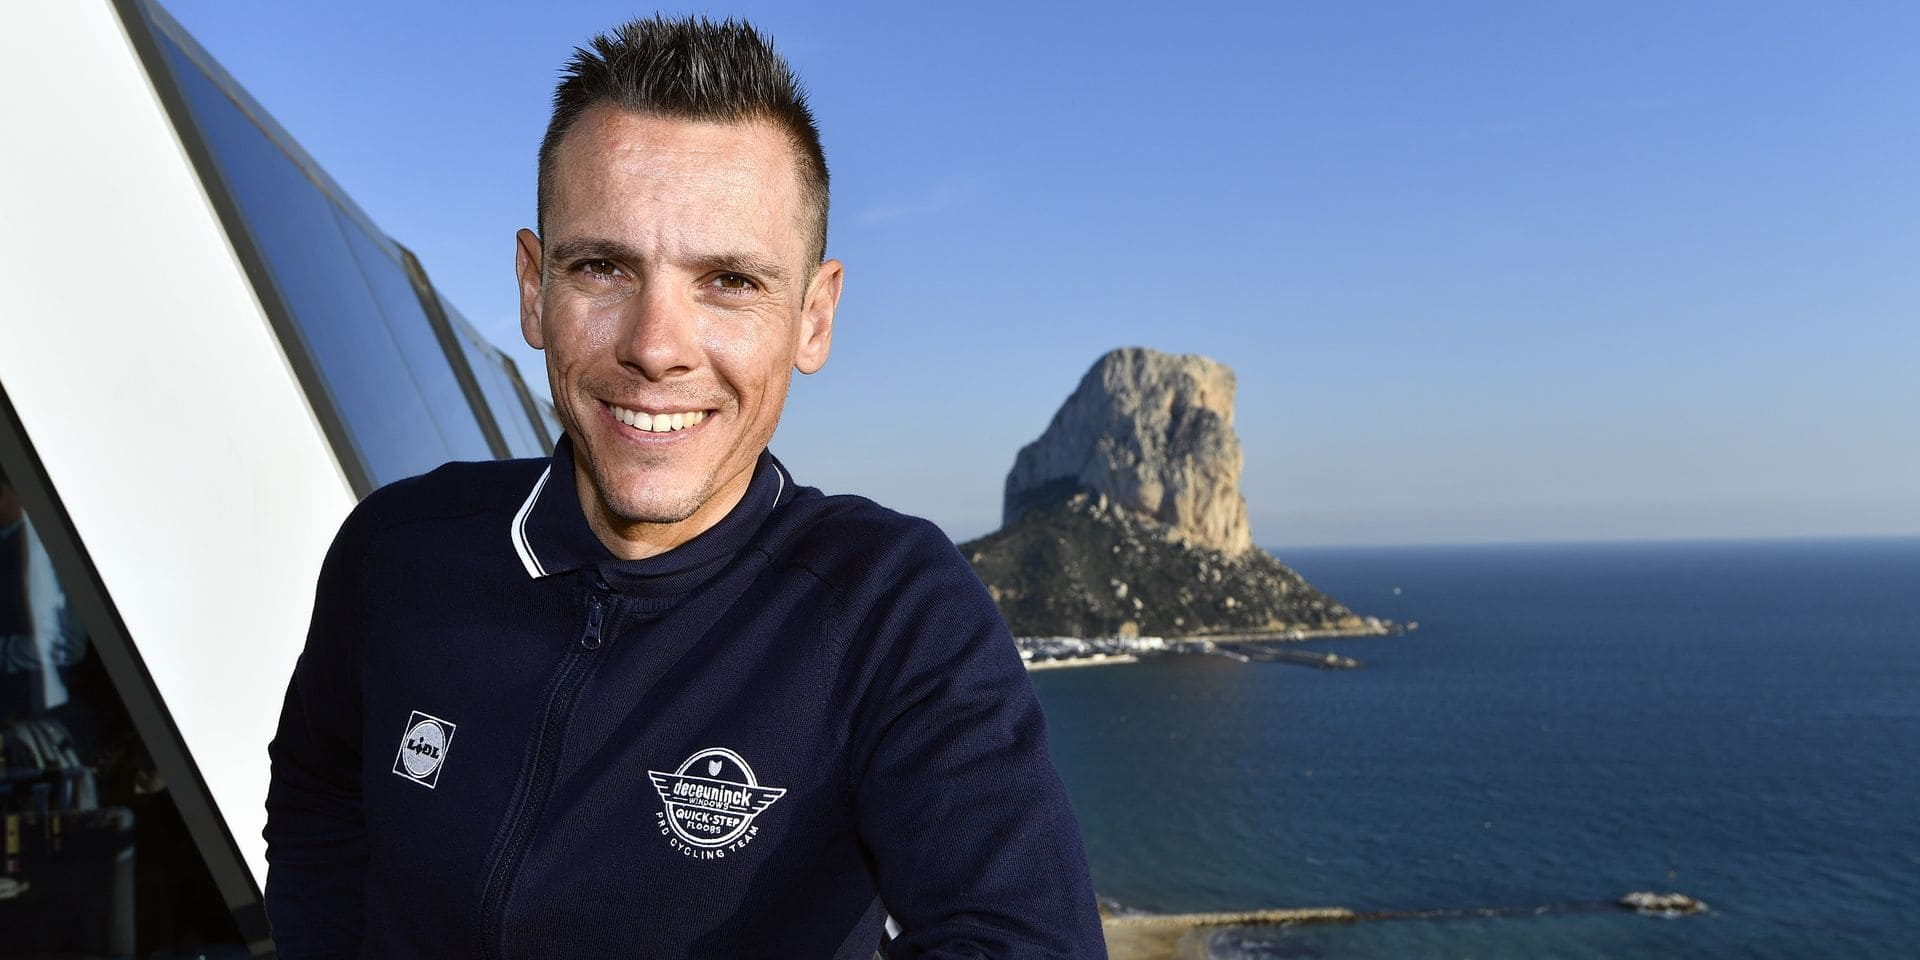 Belgian Philippe Gilbert pictured during the team presentation of Belgian cycling team Deceuninck - Quick-Step, in Calpe, Spain, Tuesday 08 January 2019. BELGA PHOTO ERIC LALMAND